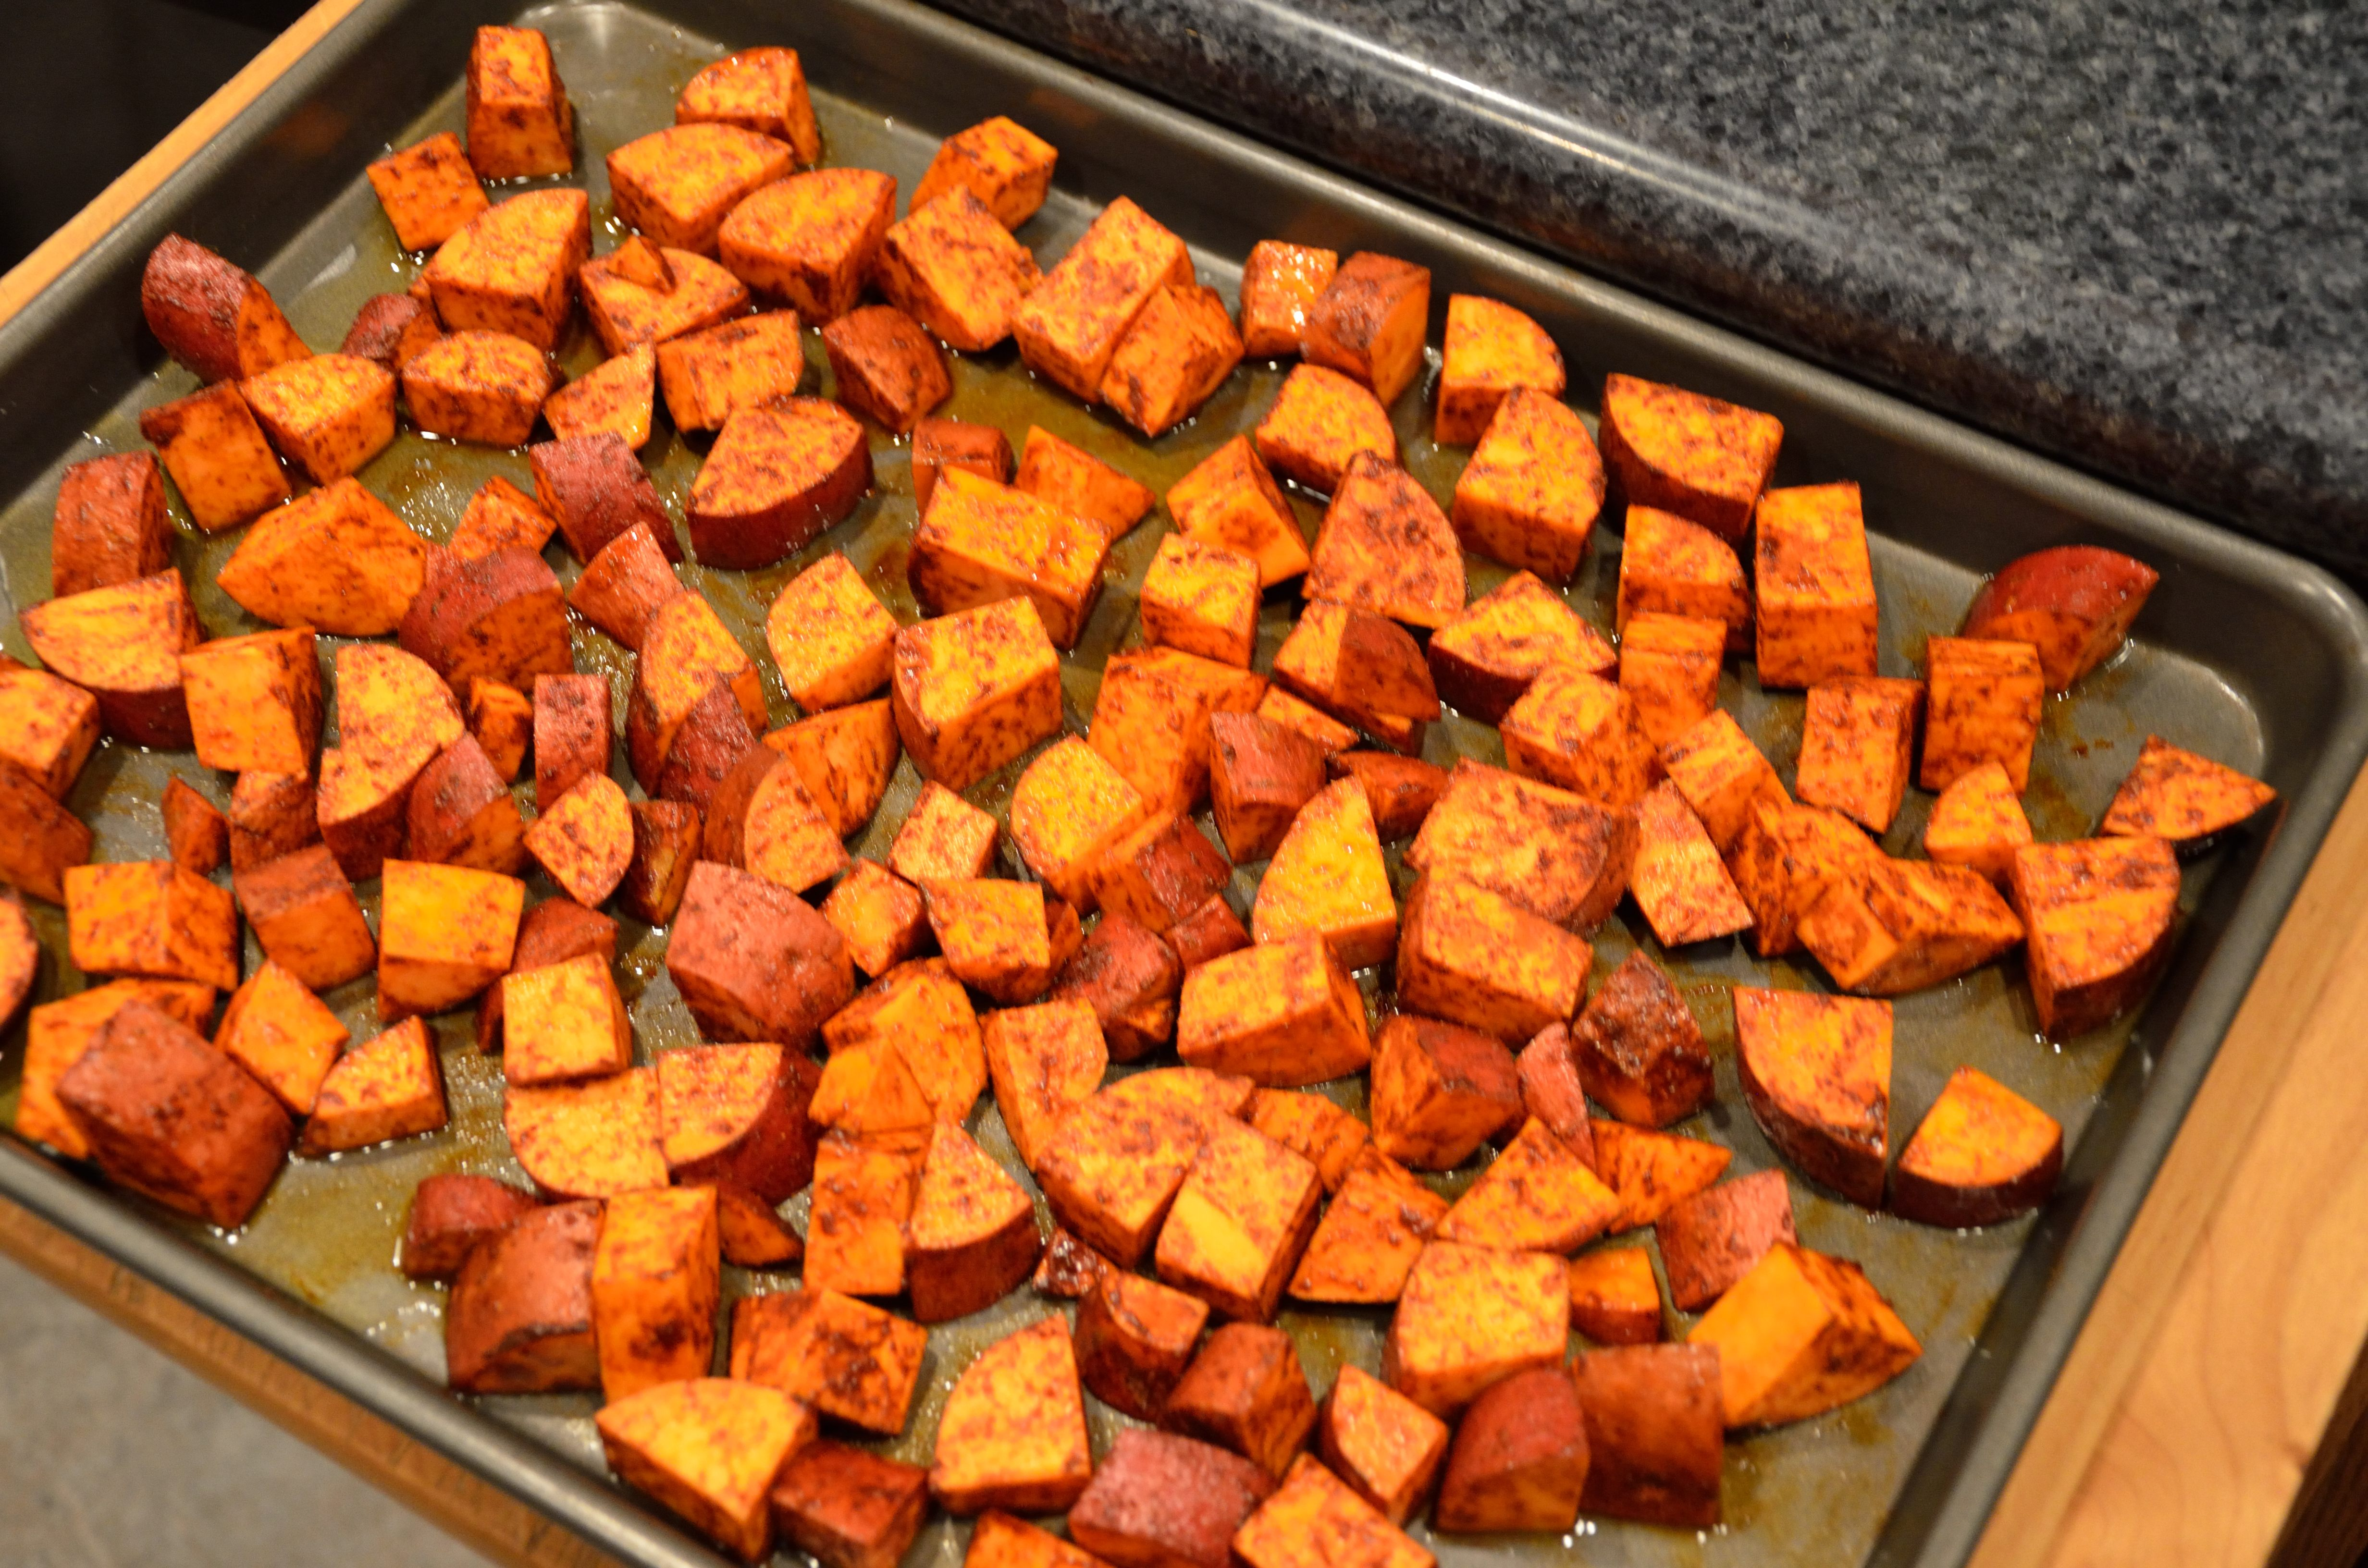 Roasted Sweet Potatoes with Smoked Paprika | MowryJournal.com